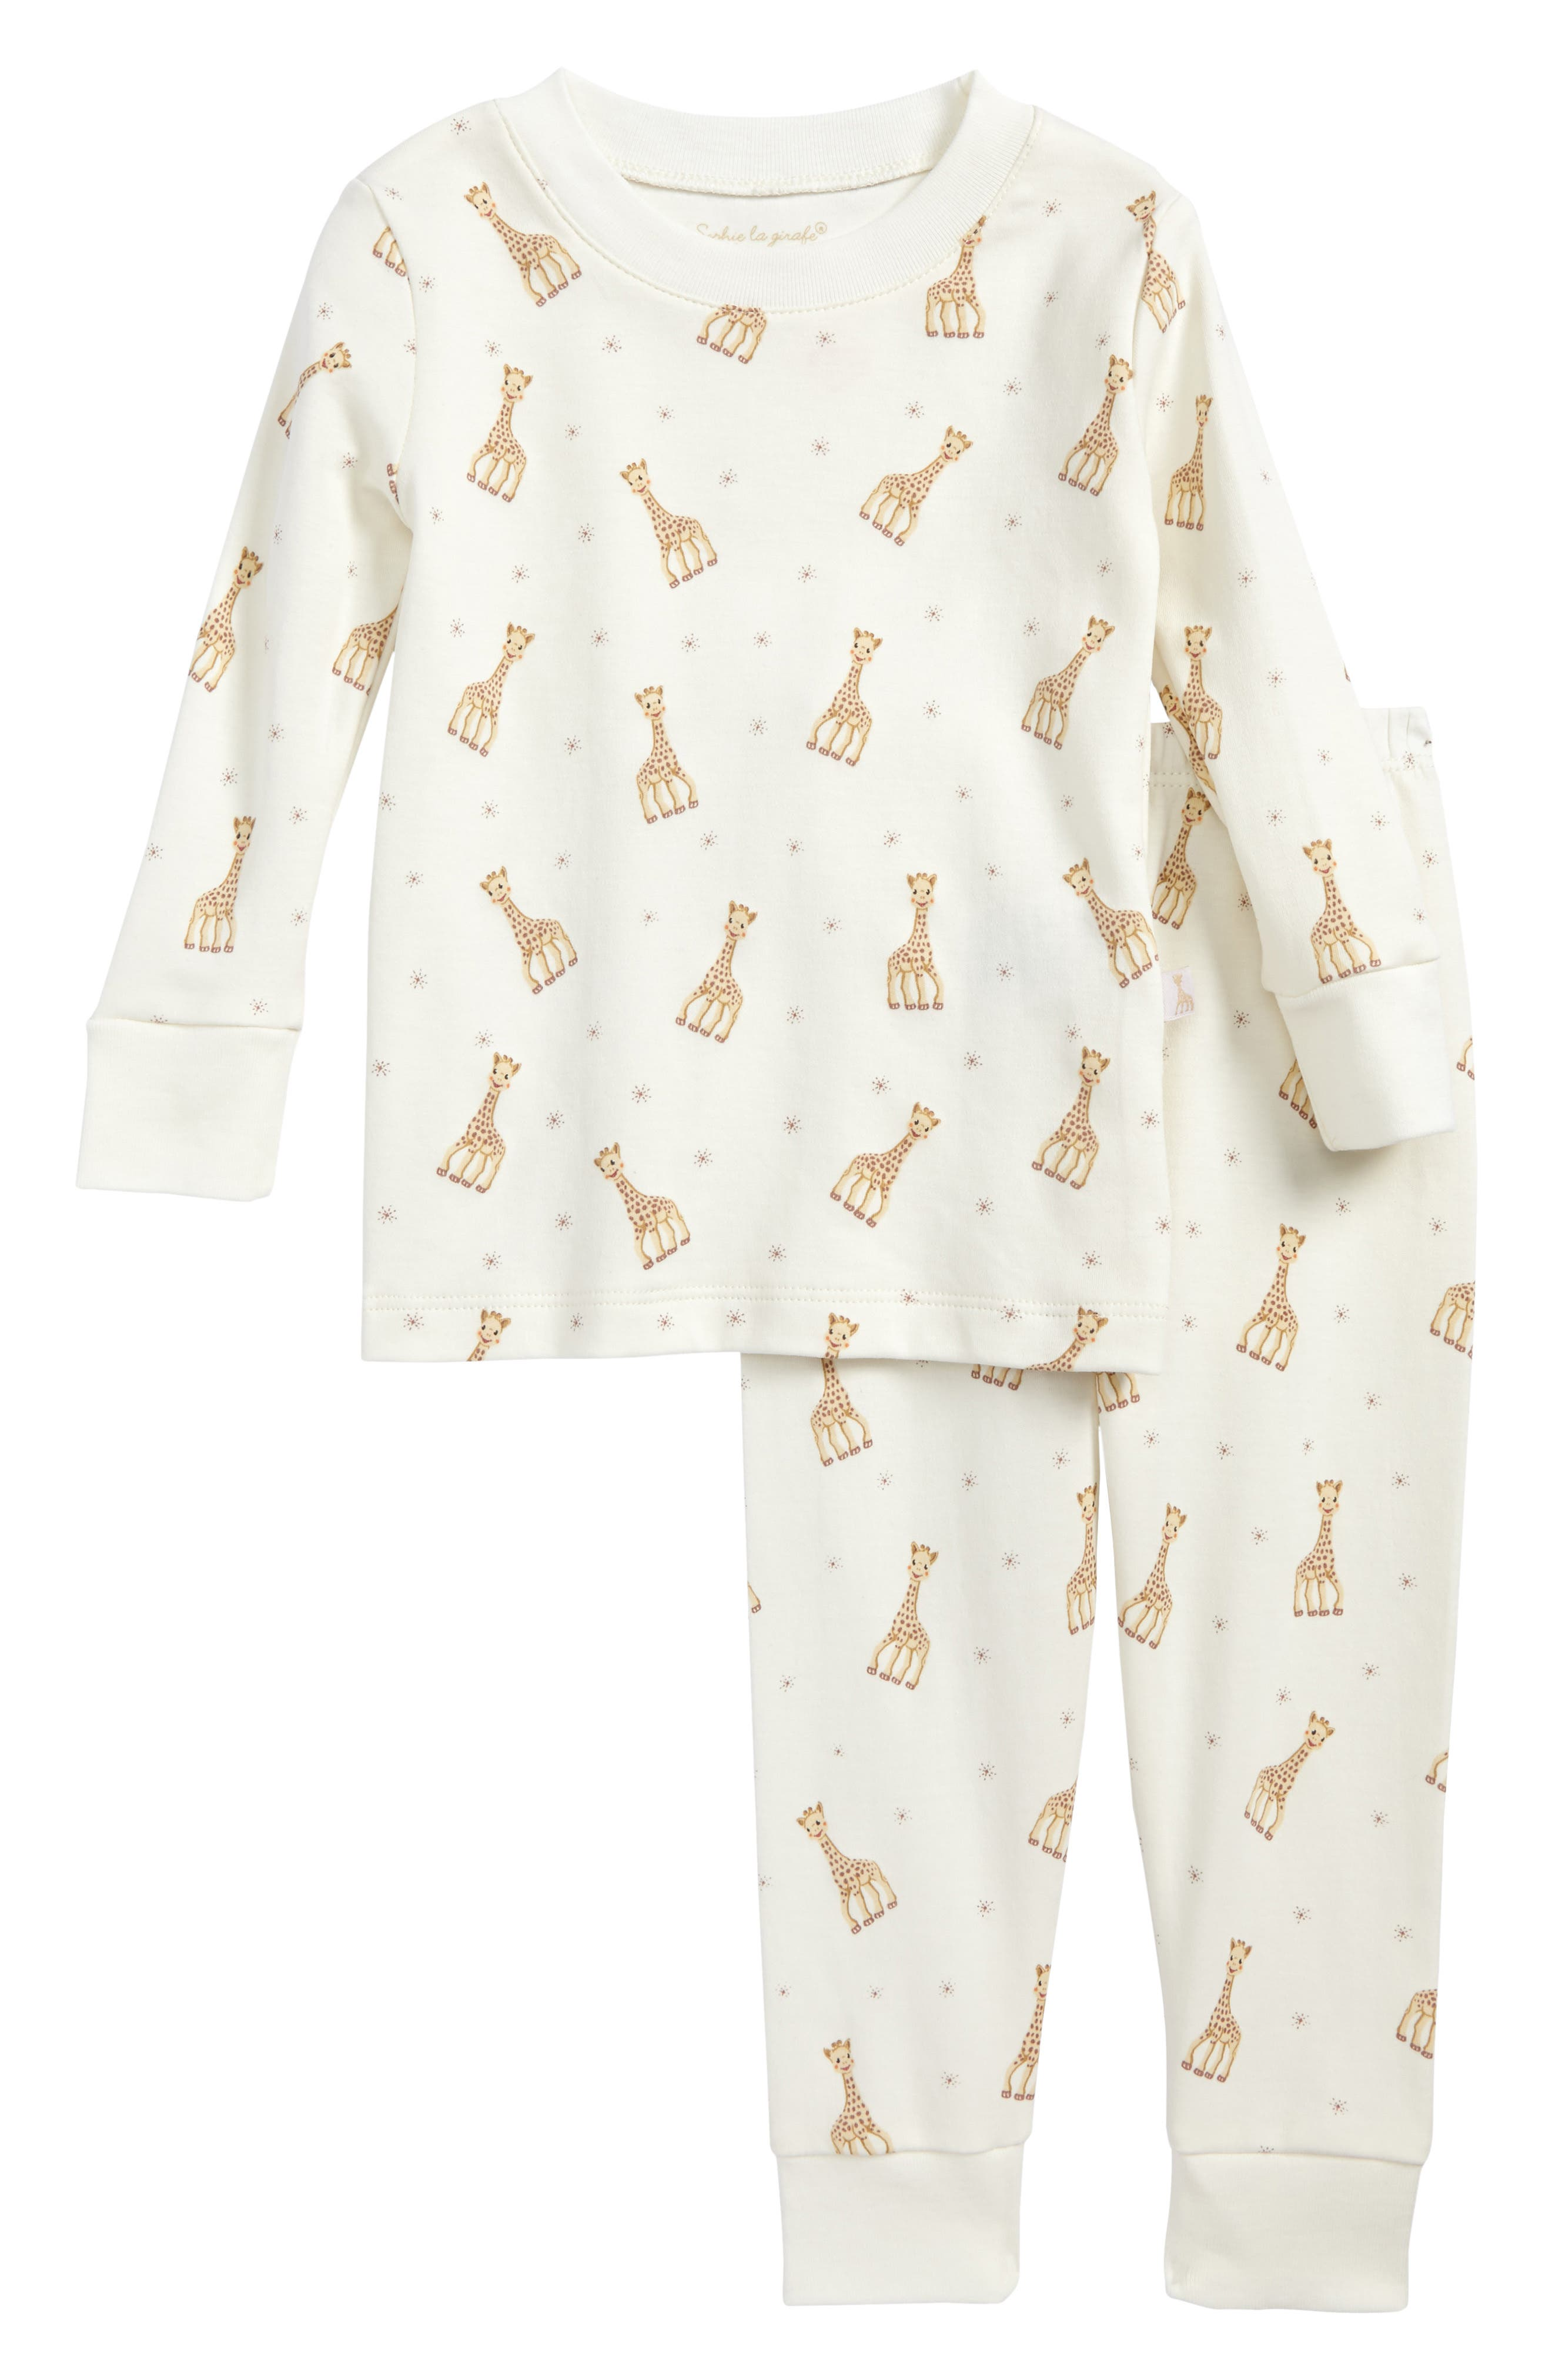 Sophie la Girafe Fitted Two-Piece Pajamas,                             Main thumbnail 1, color,                             Ecru Print